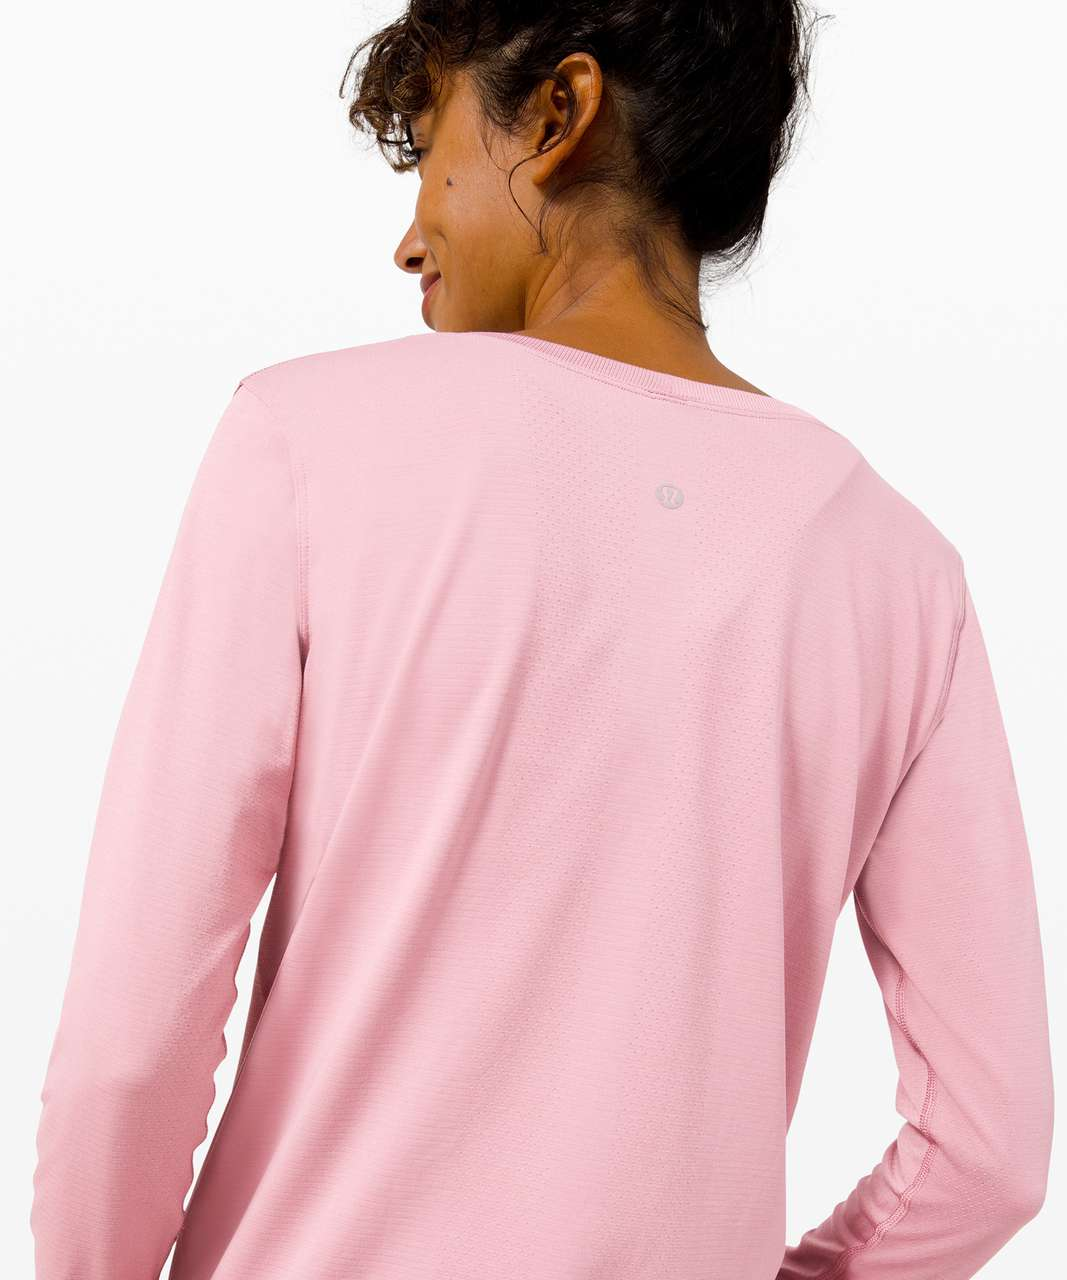 Lululemon Swiftly Relaxed Long Sleeve - Pink Taupe / Pink Taupe